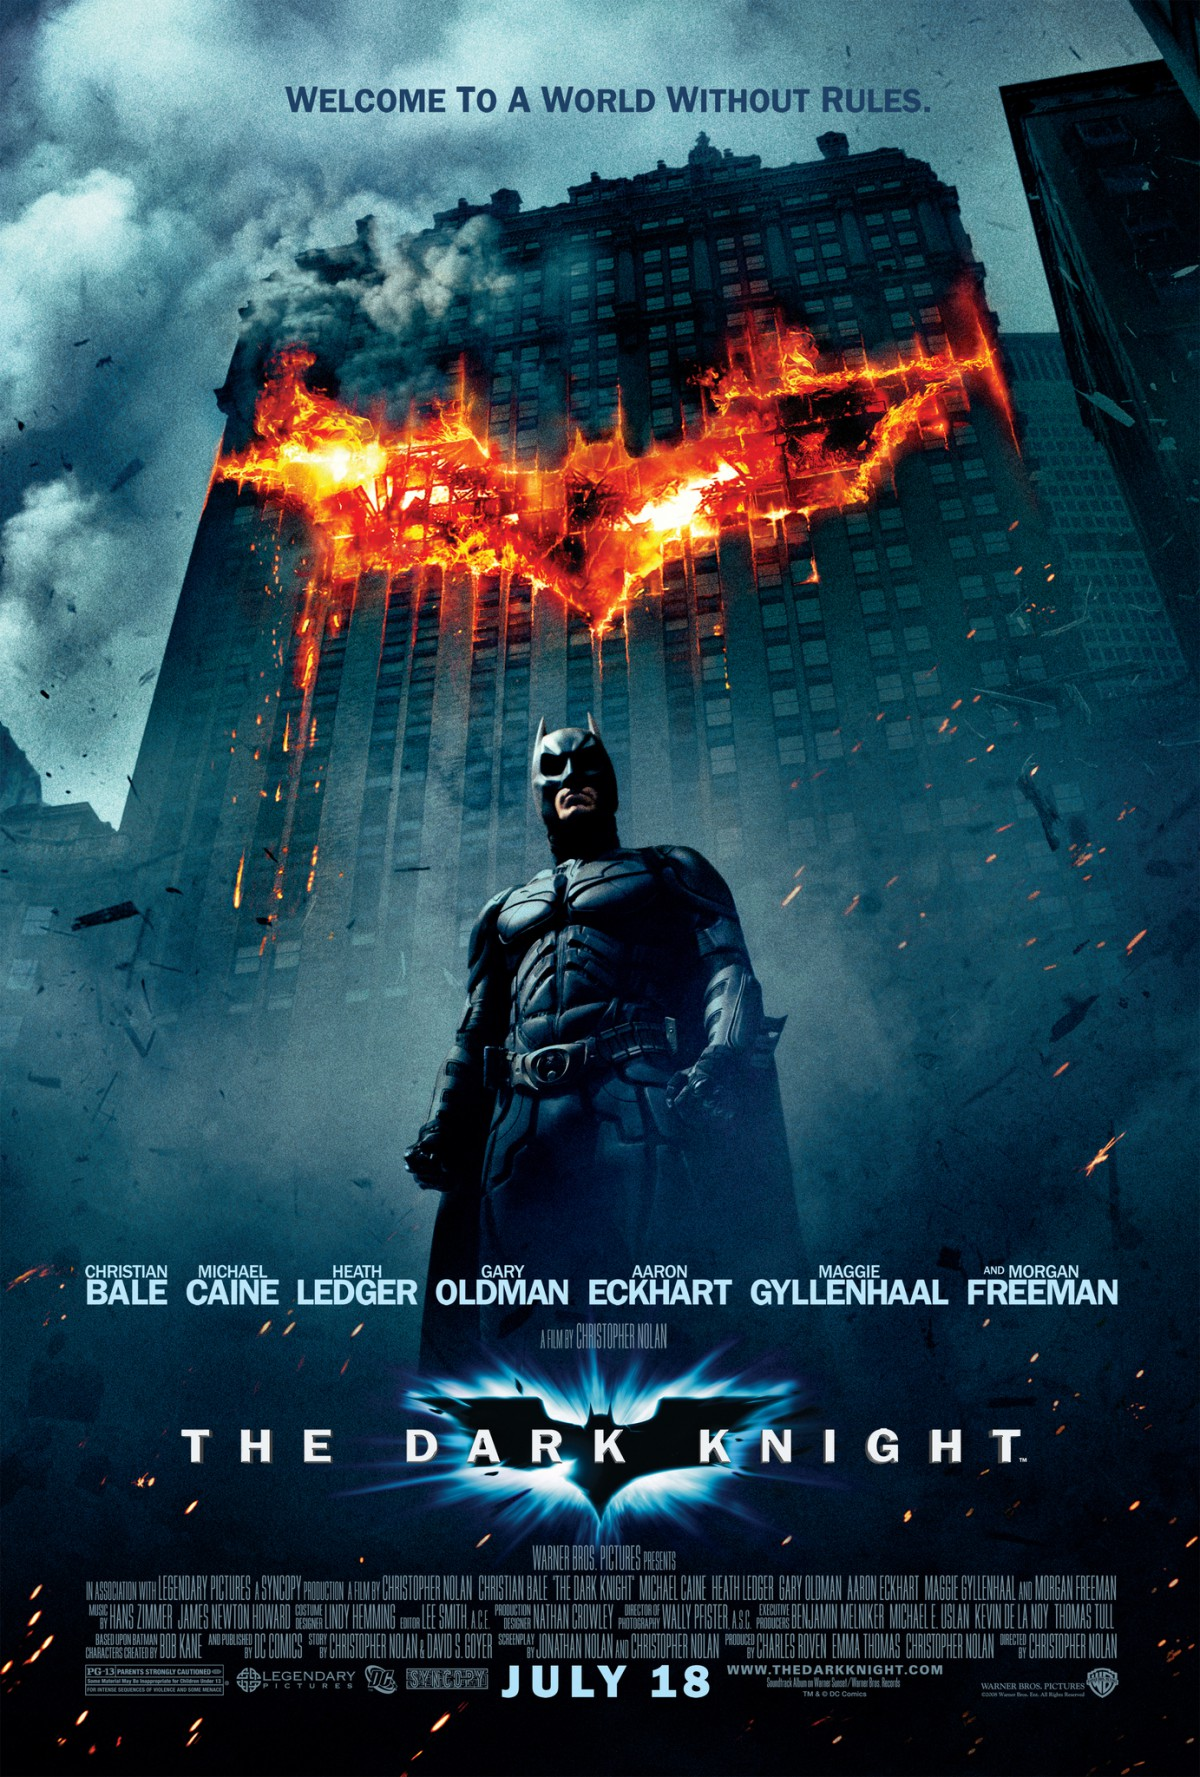 7. The Dark Knight (2008)